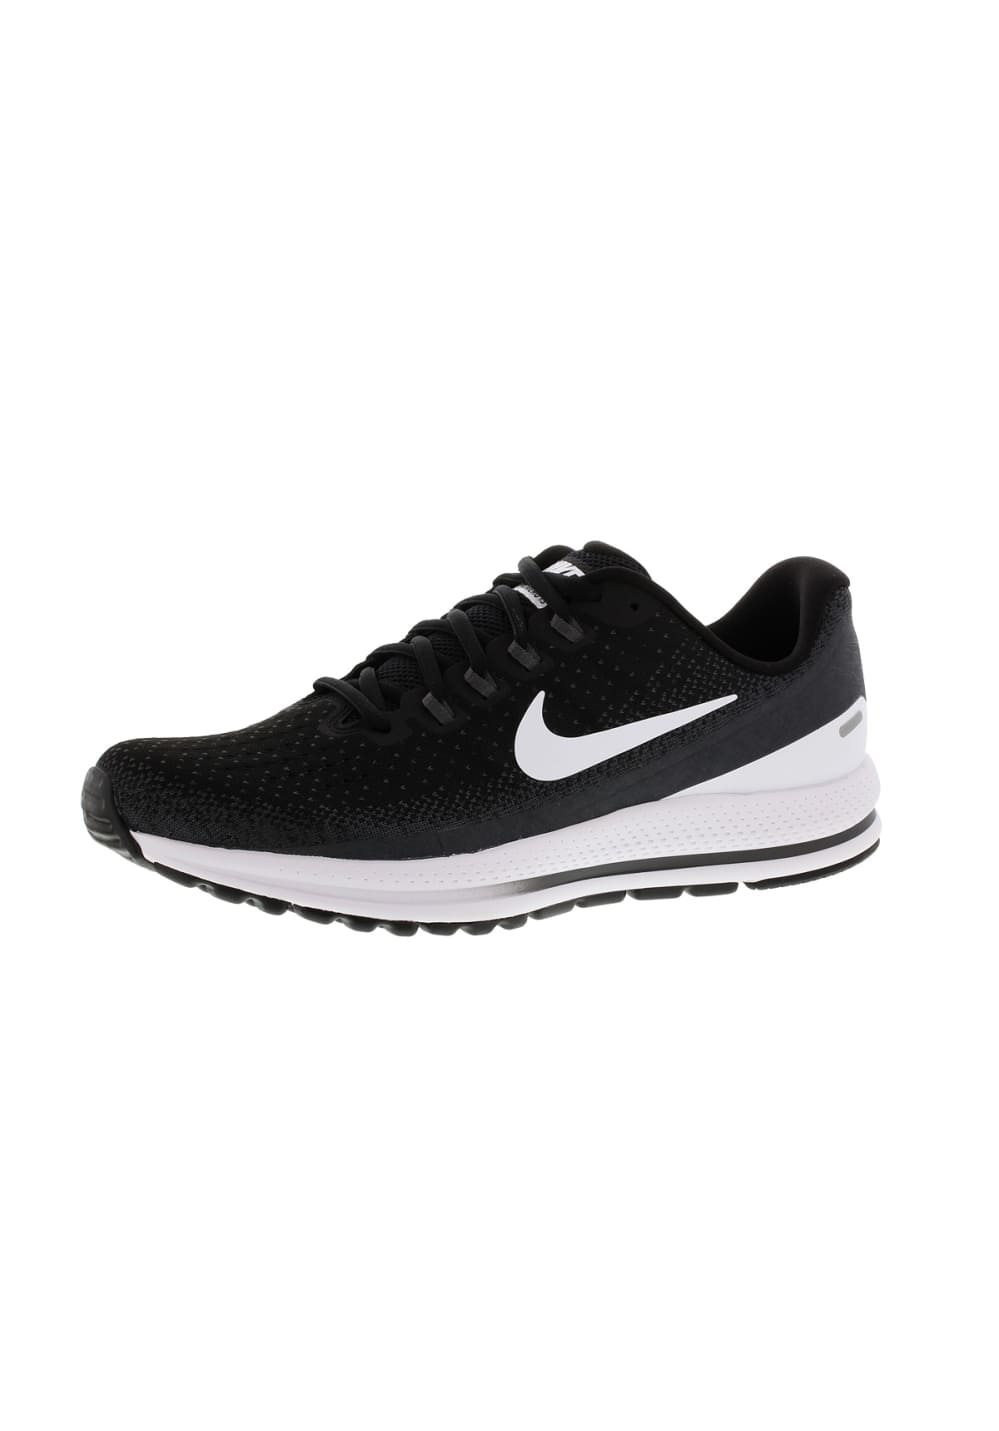 online store ac7c4 52314 Nike Air Zoom Vomero 13 - Running shoes for Men - Black